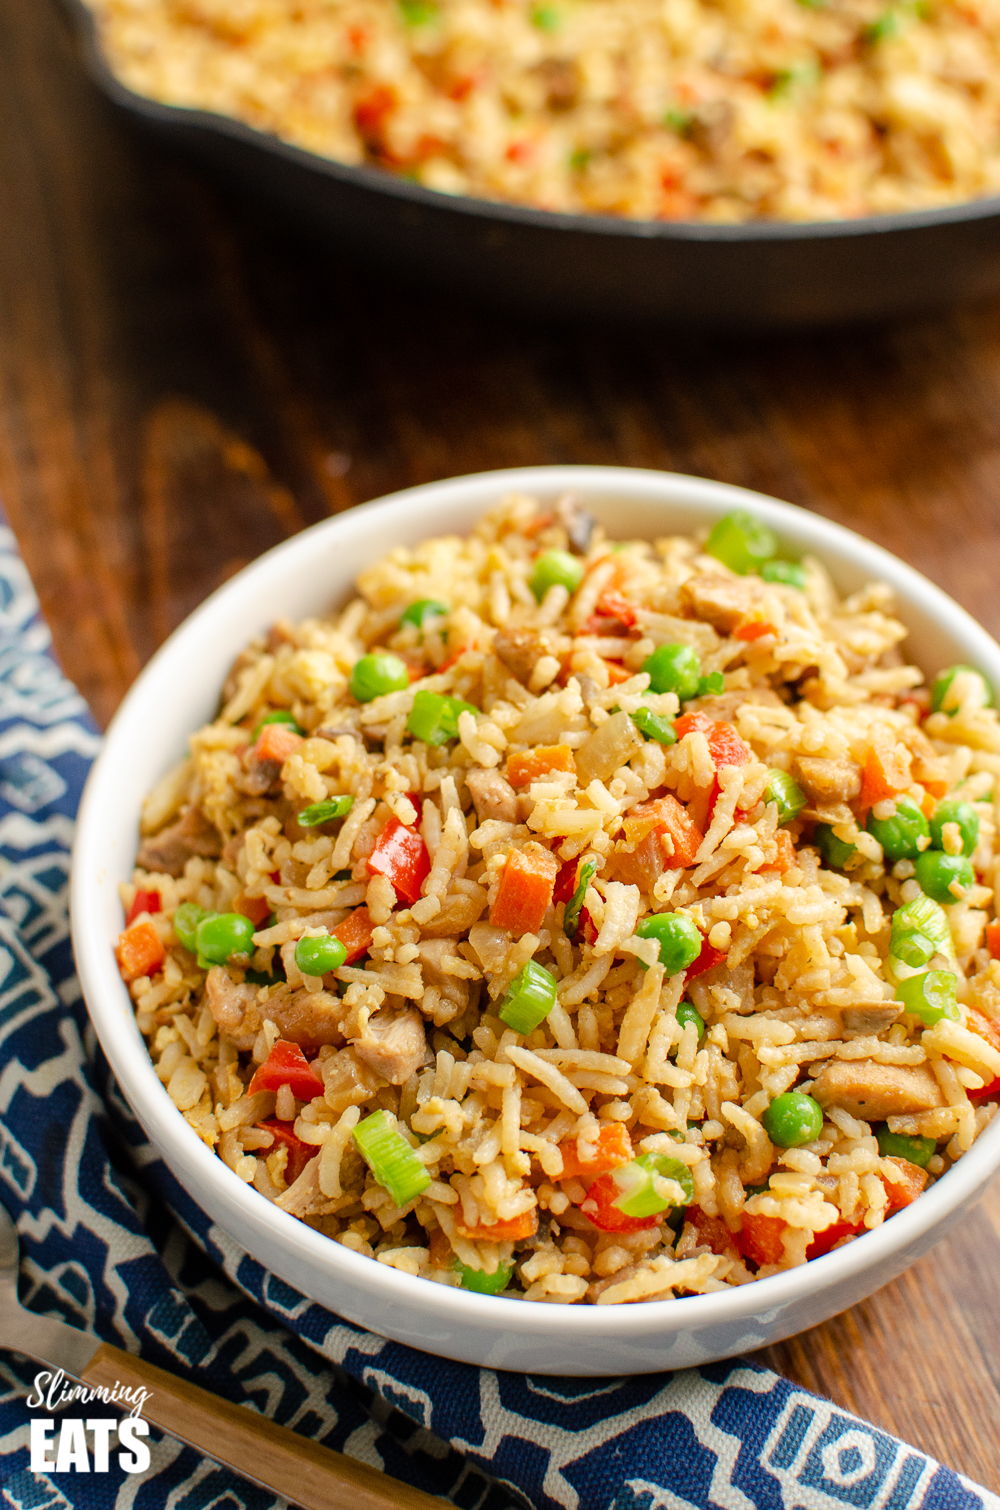 chicken fried rice in white bowl on wooden board with blue patterned placemat